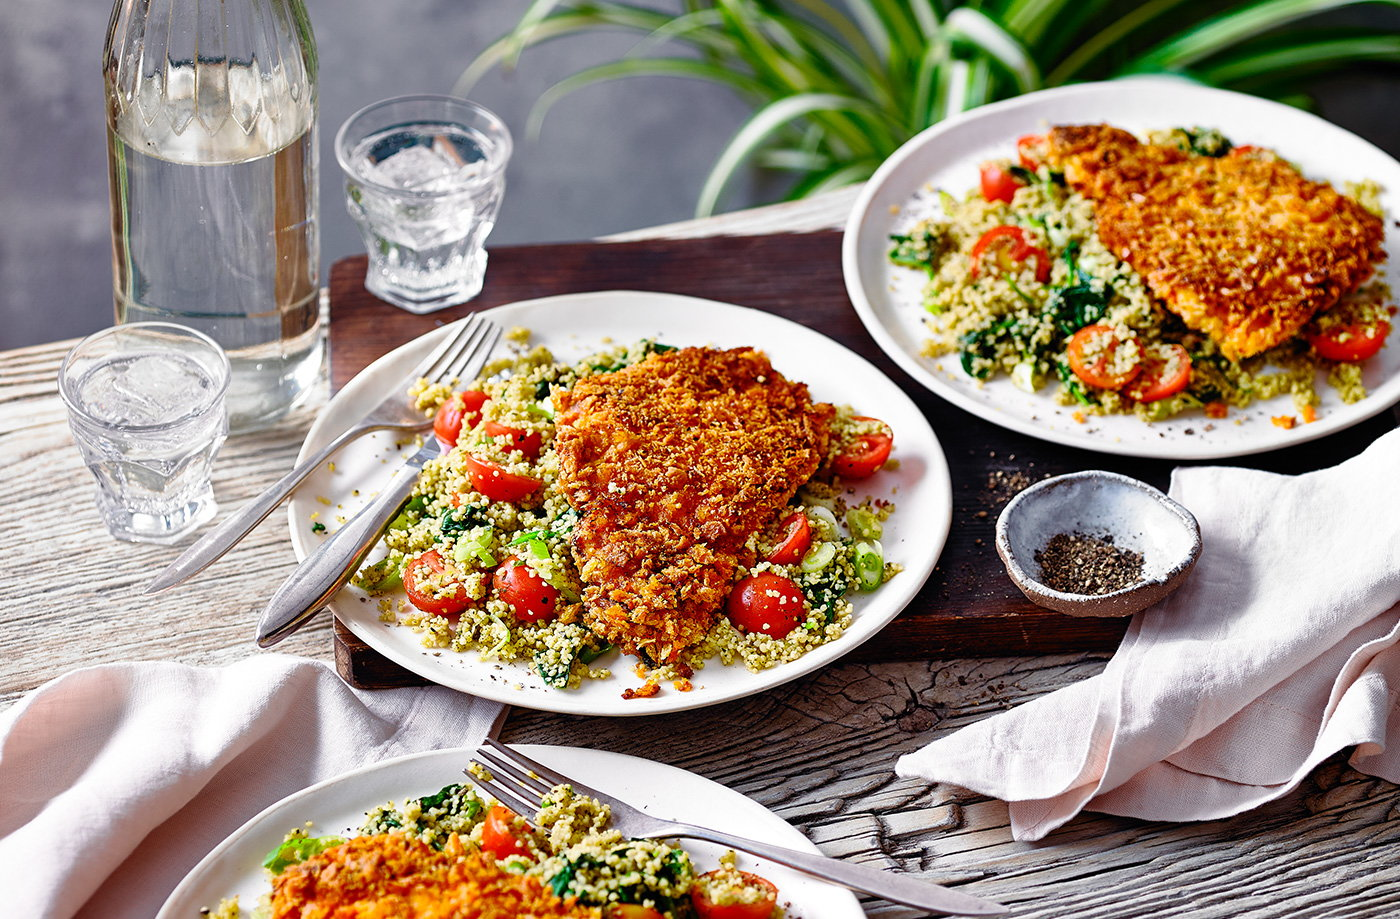 Spiced chicken escalope with couscous salad recipe